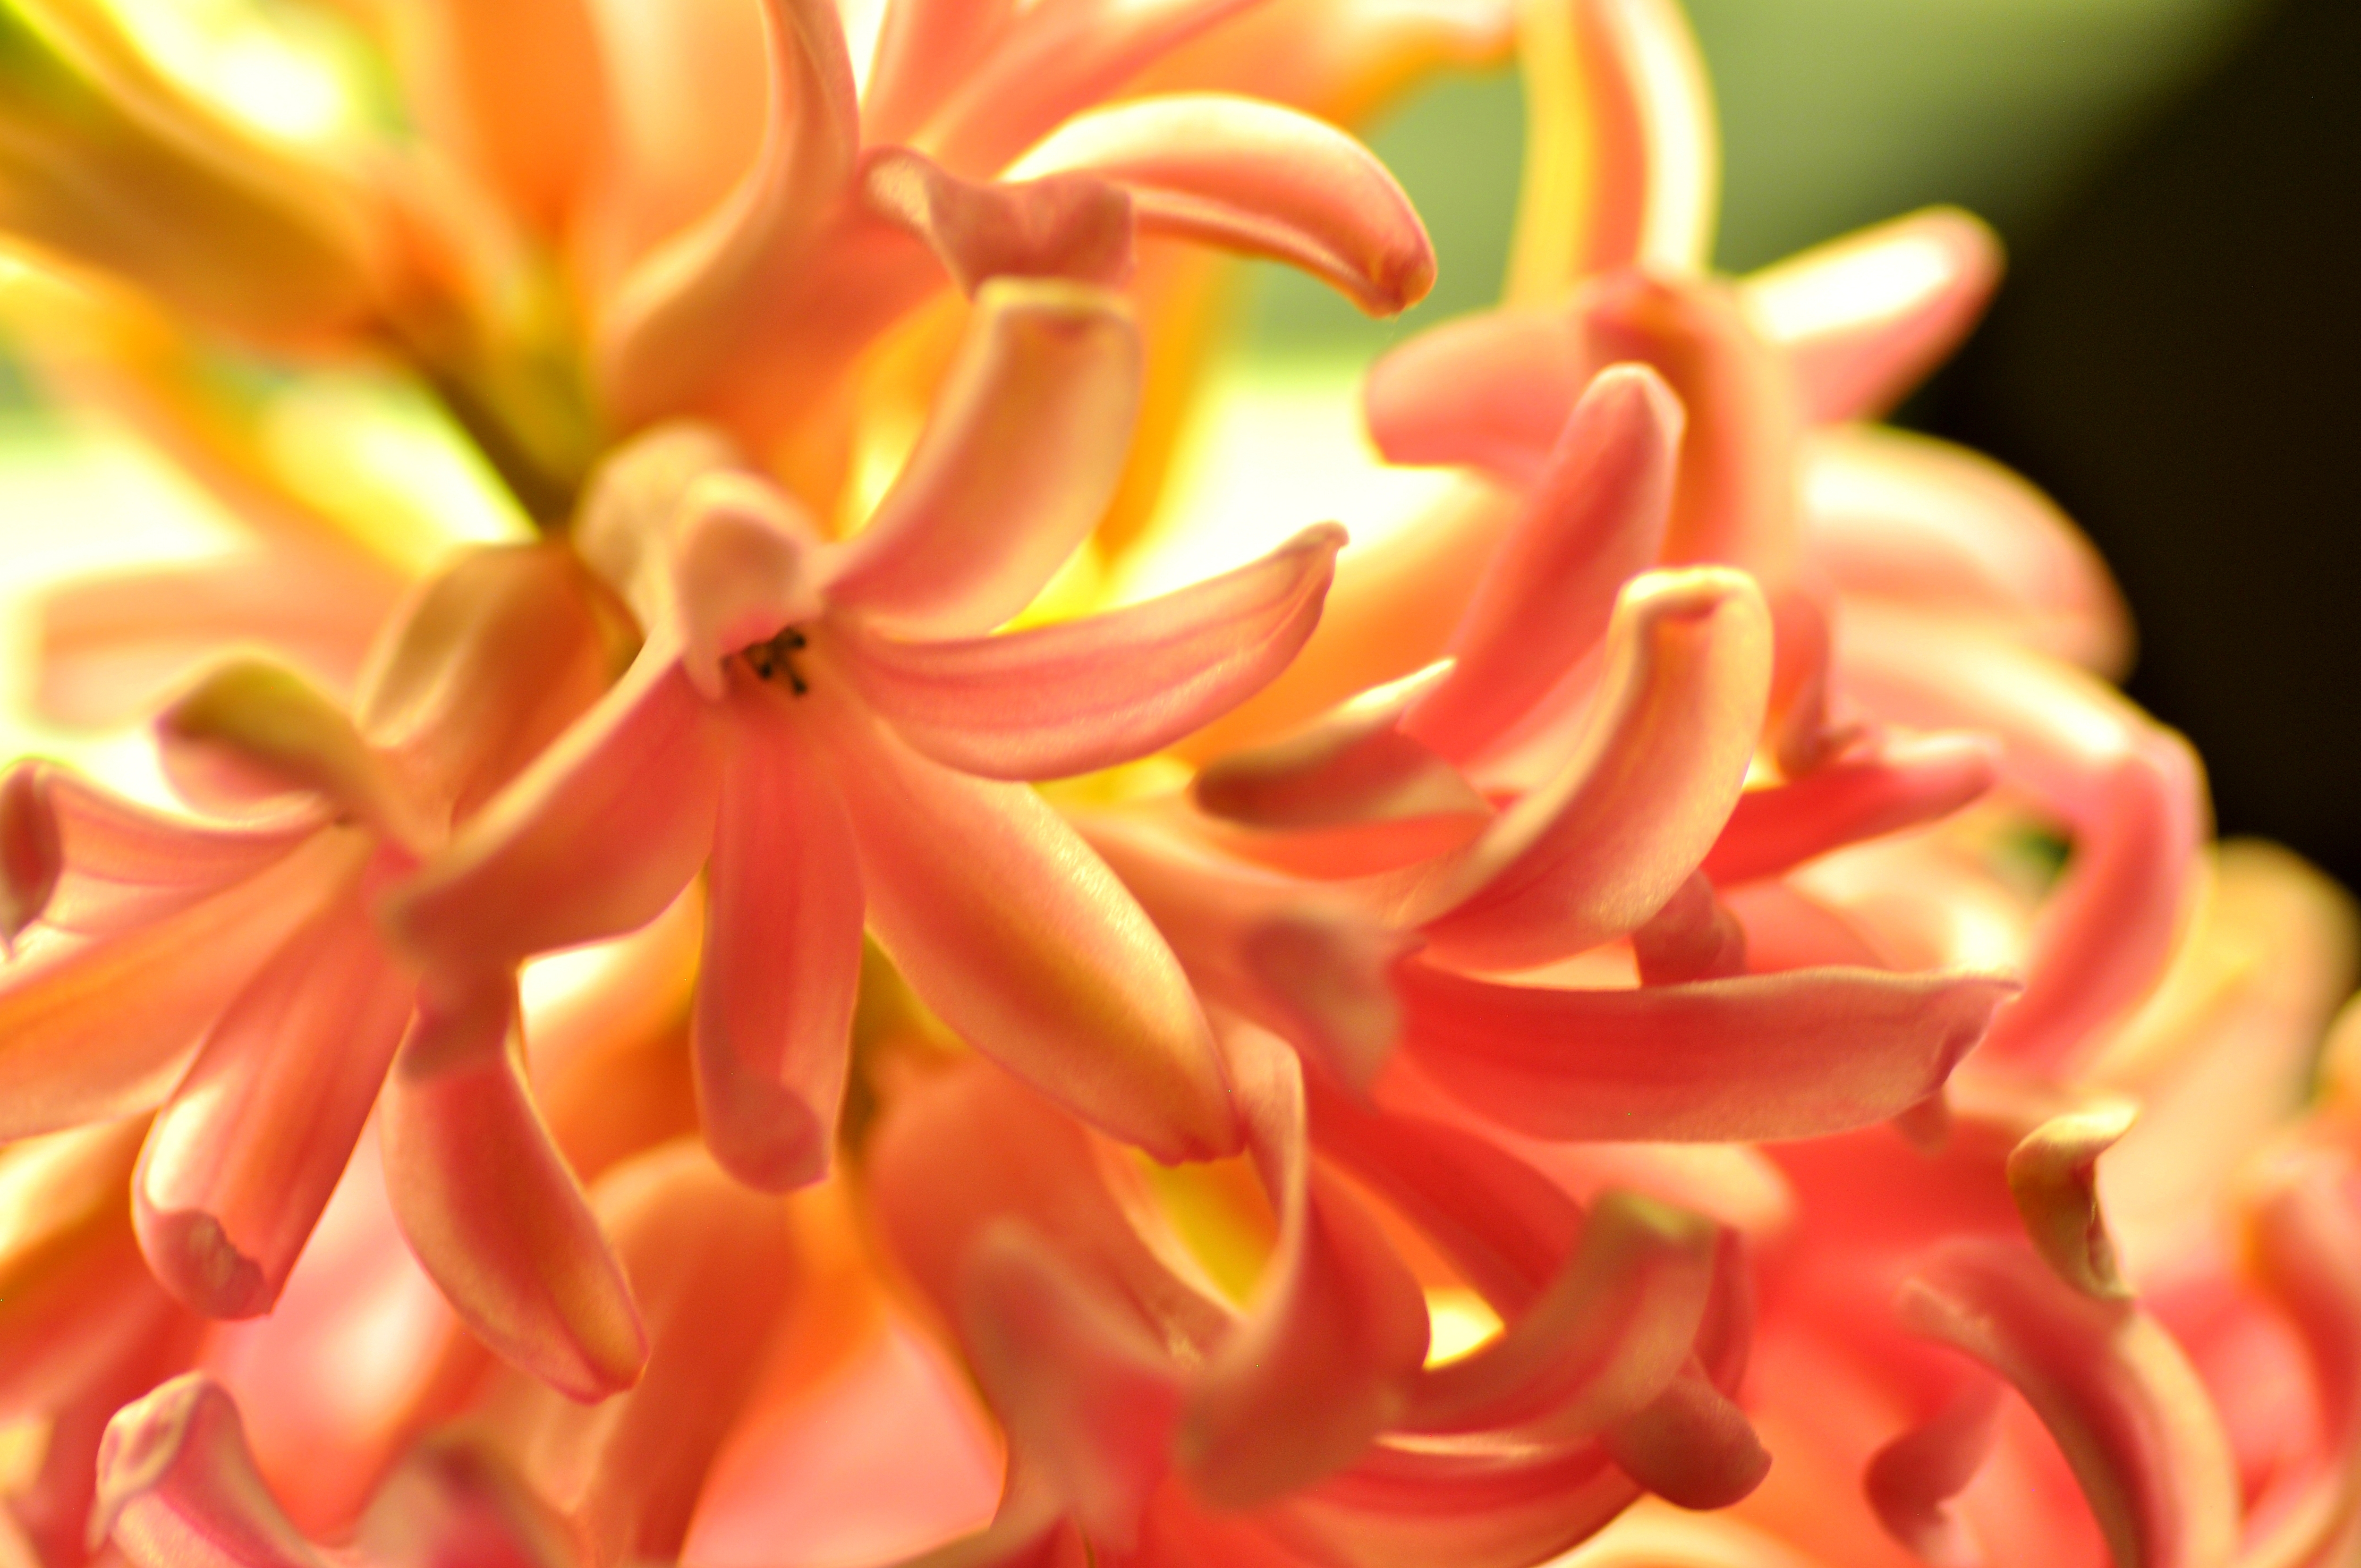 156263 free download Orange wallpapers for phone, Nature, Hyacinth, Flower, Macro Orange images and screensavers for mobile